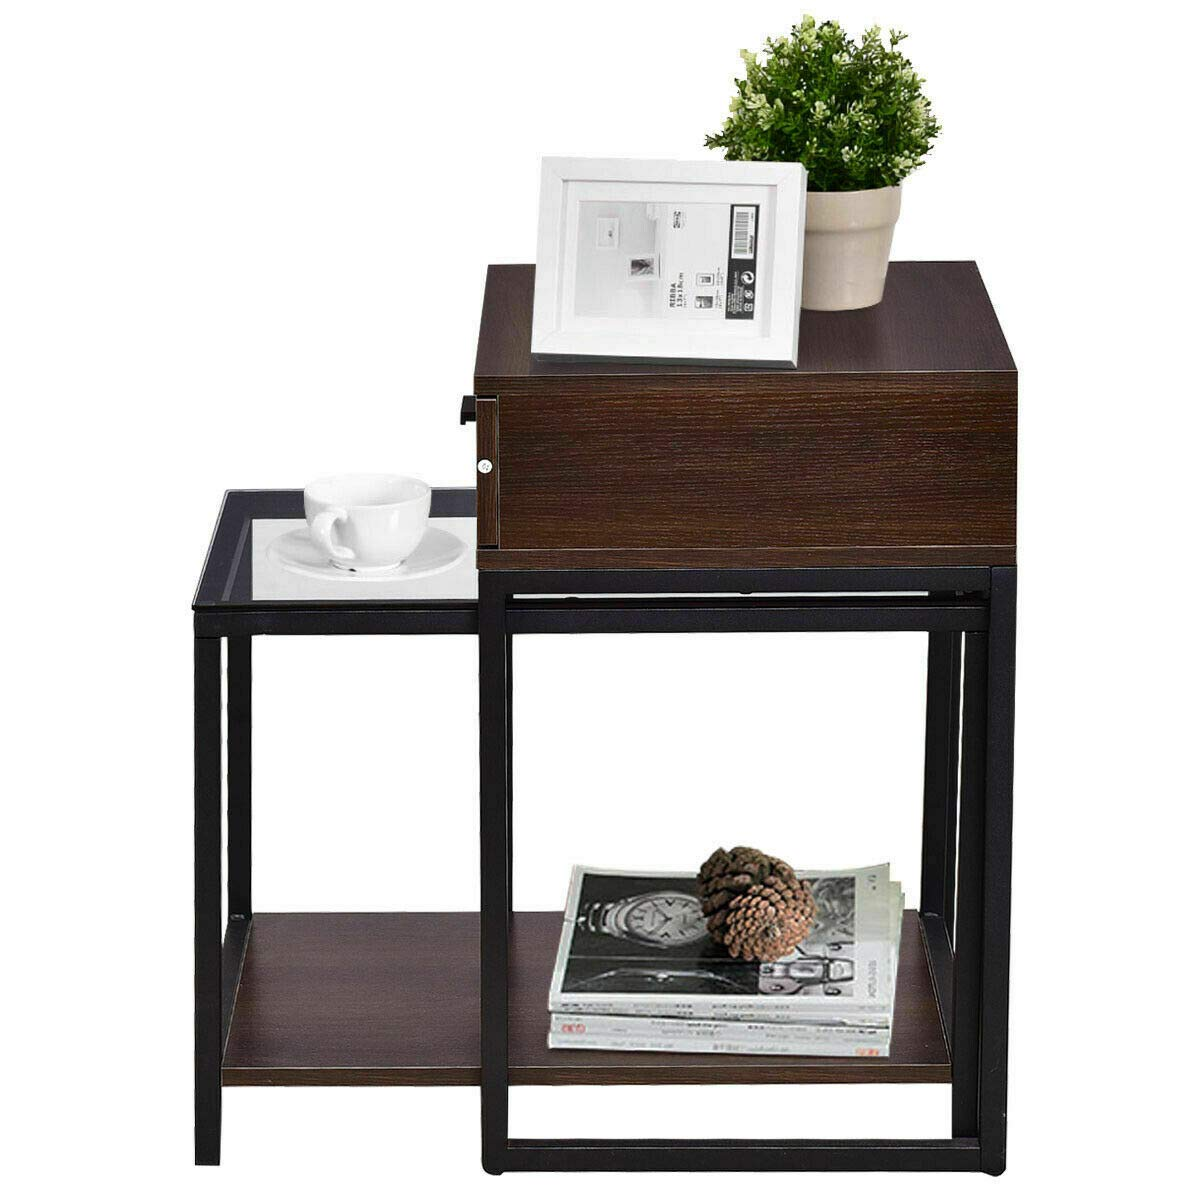 Lovelabel 2 Pieces Nesting Table Coffee Table Side Table End Table Metal Frame Wood Glass by LOVELABEL